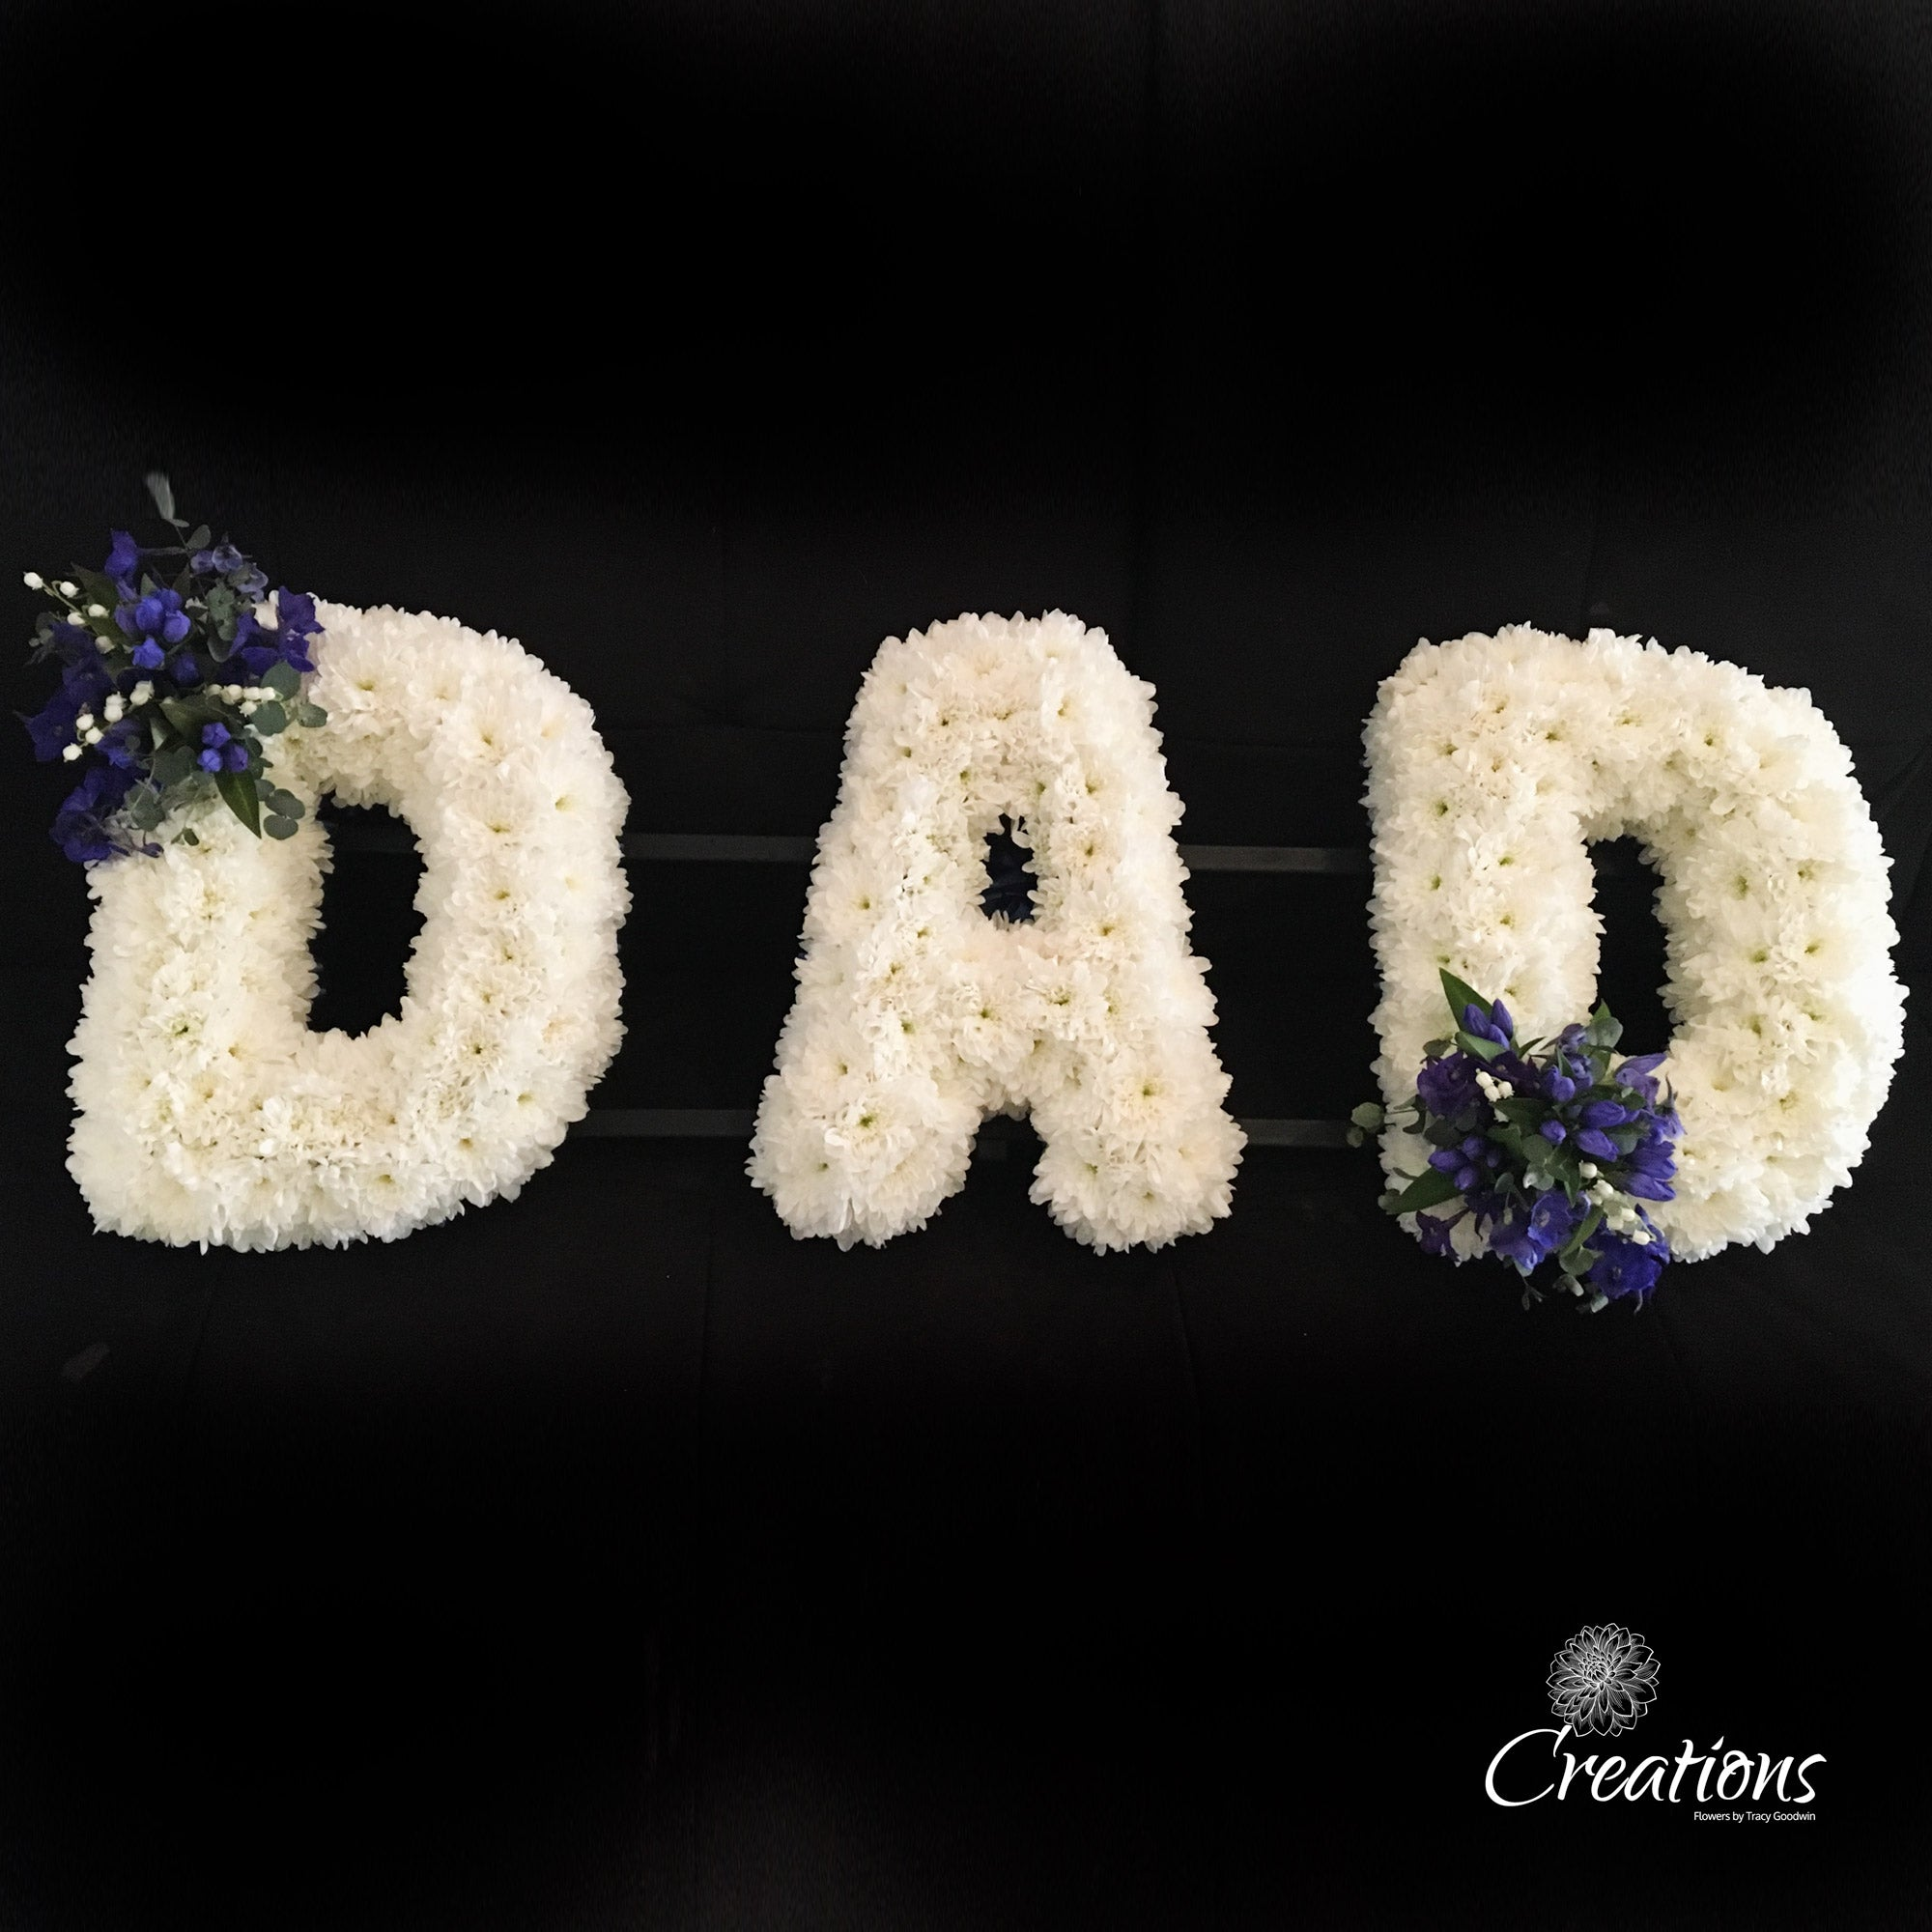 Funeral letters names creations flowers izmirmasajfo